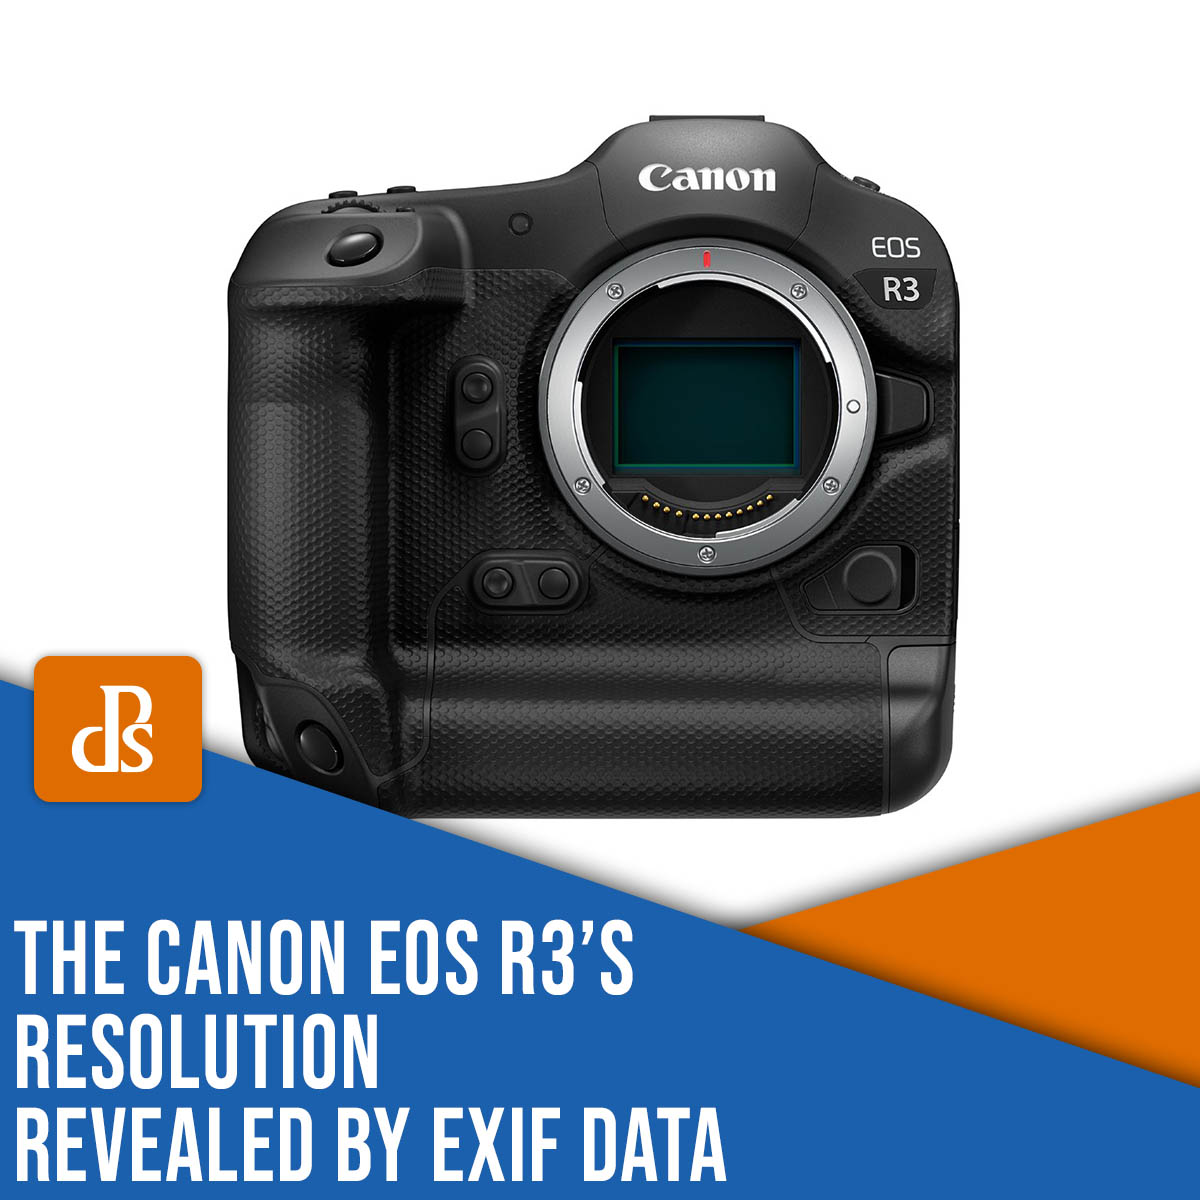 The Canon EOS R3's resolution revealed by EXIF data